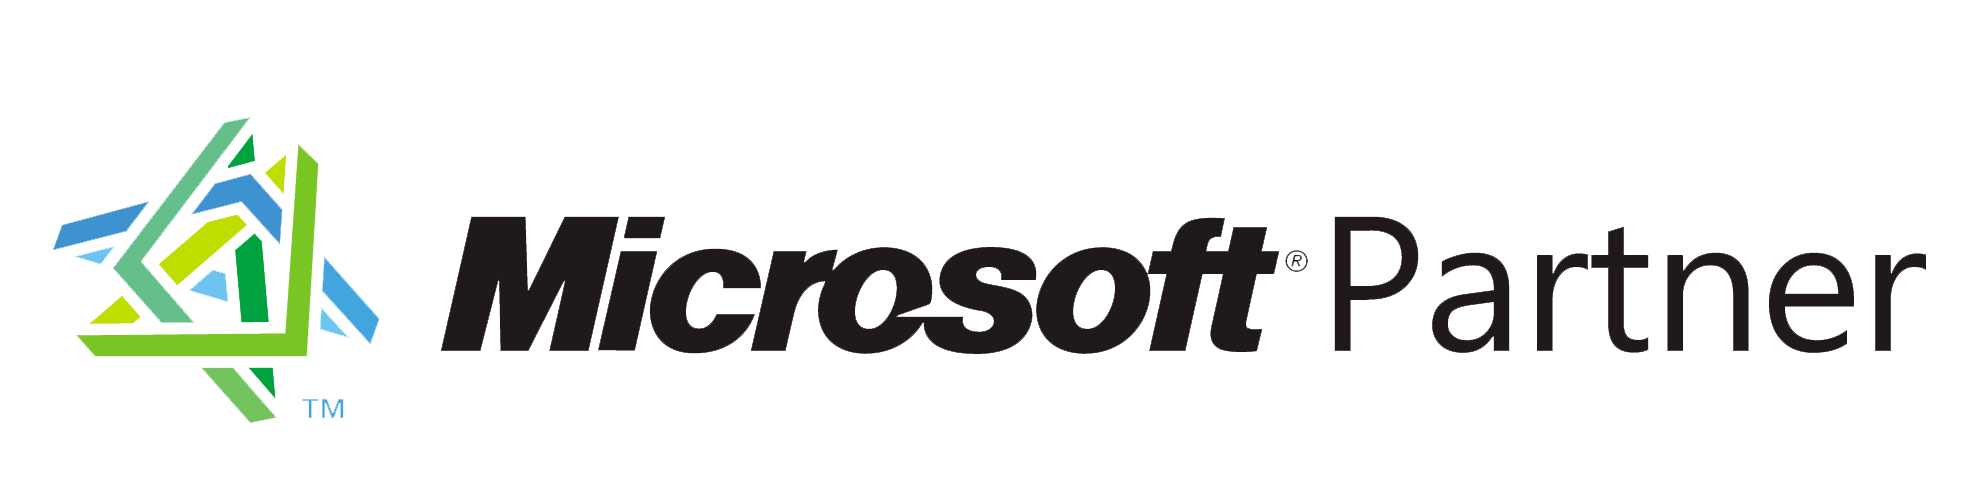 Proud Microsoft Partner